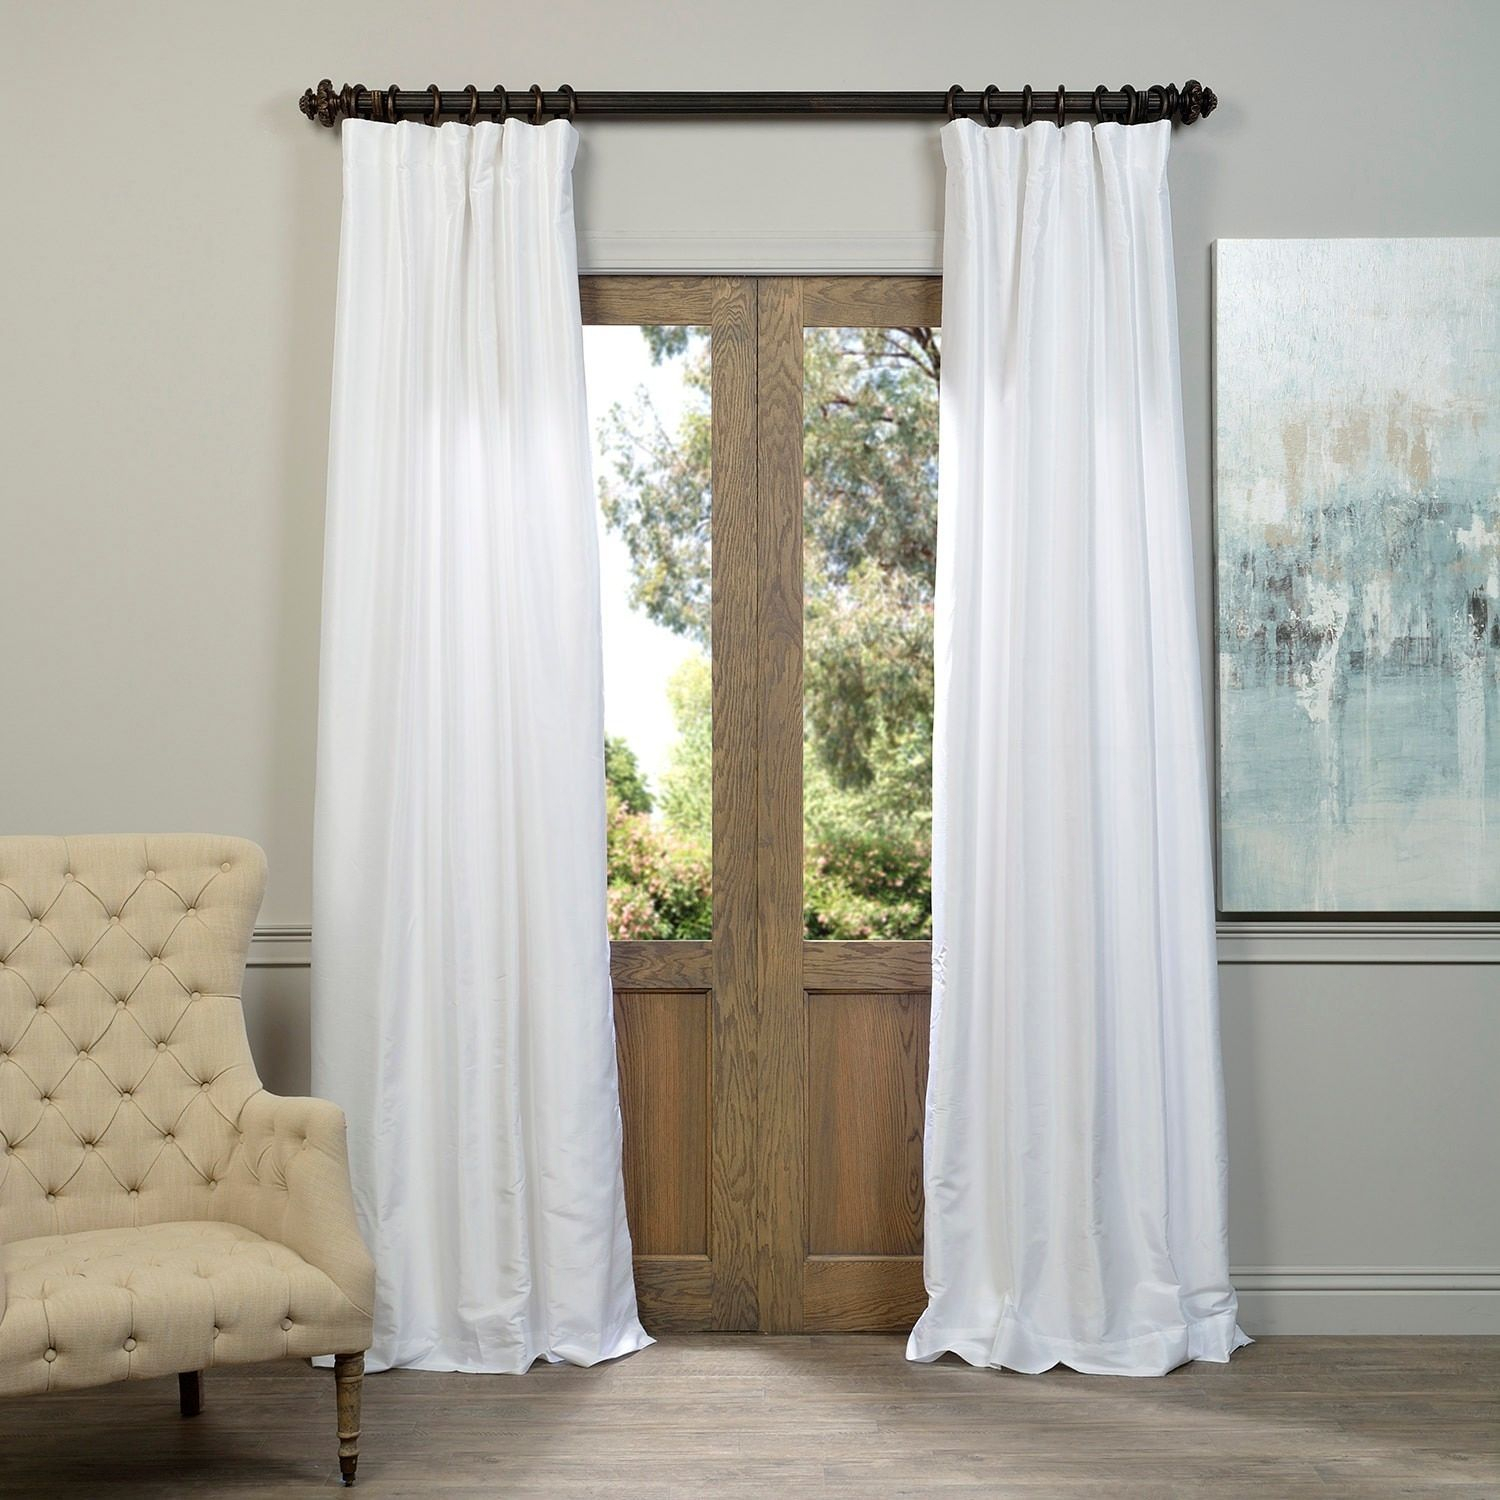 Exclusive Fabrics Ice White Vintage Faux Textured Dupioni With Regard To Ice White Vintage Faux Textured Silk Curtain Panels (View 11 of 20)